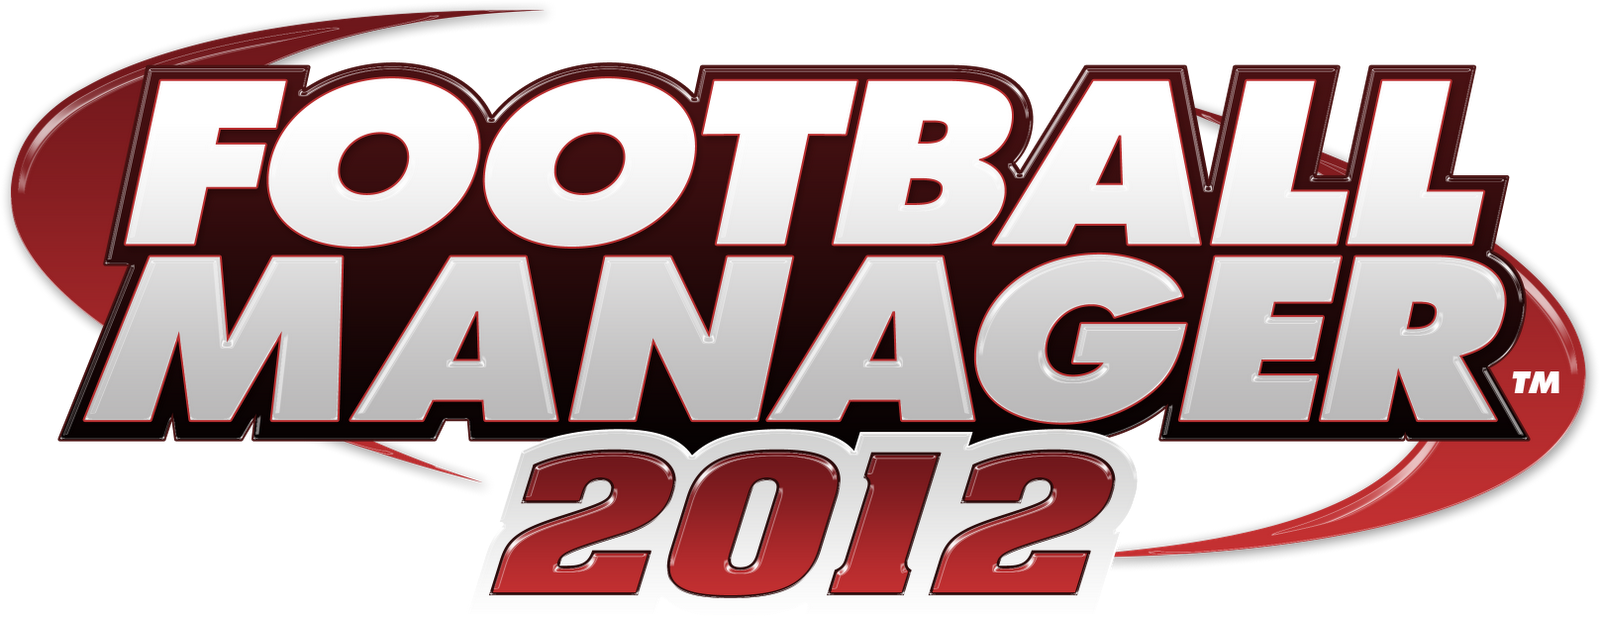 Game movies: football manager 2012 tactics trailer (hd) demo.